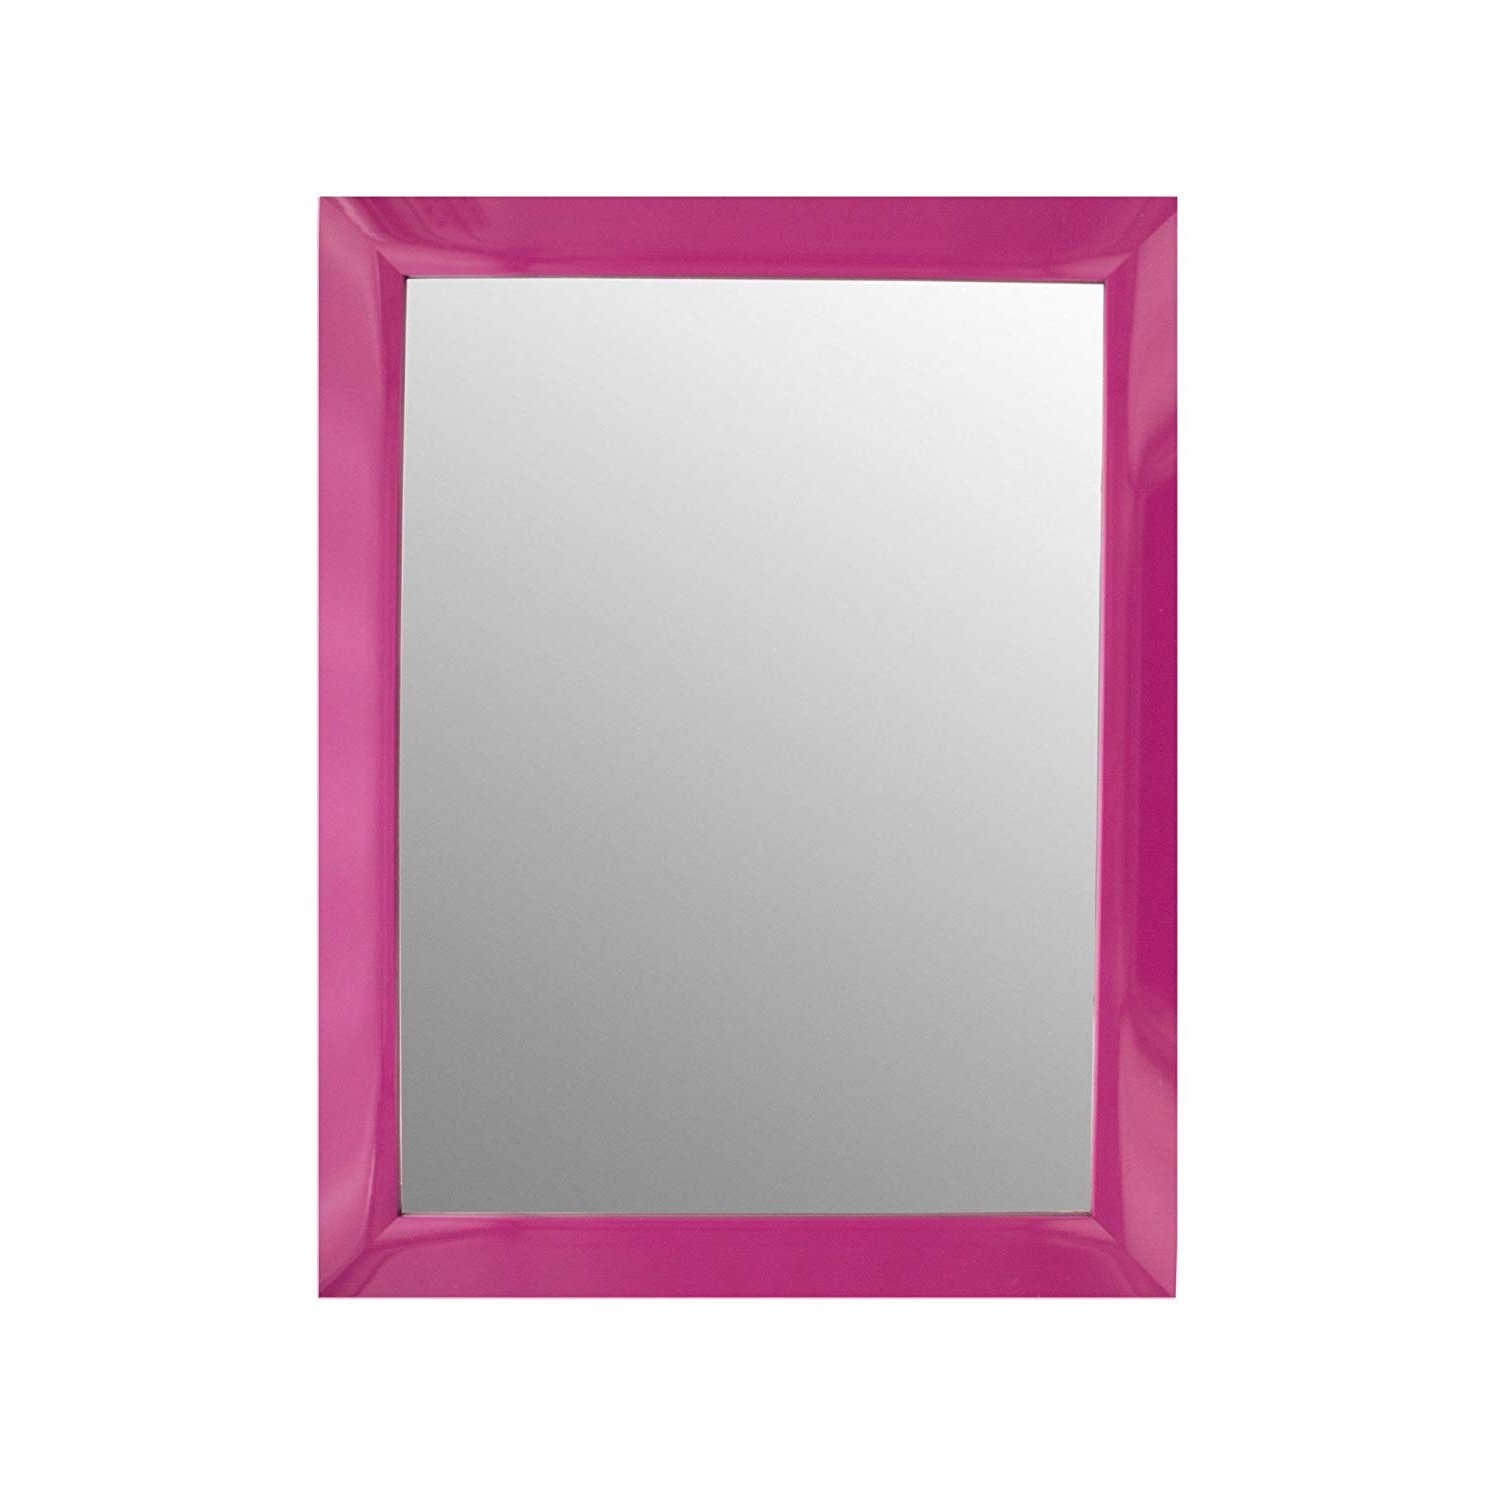 Amazon: 123 Wholesale – Set Of 6 Pink Rectangular Wall Mirror For Widely Used Pink Wall Mirrors (View 2 of 20)